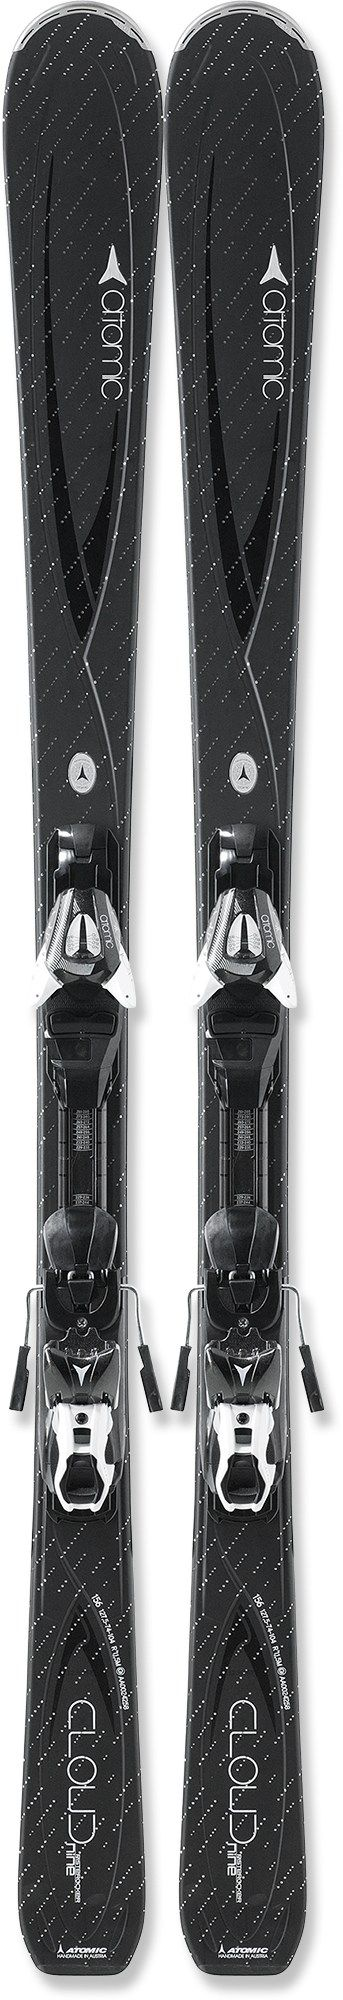 Dear Santa: Atomic SYS Cloud 9 Skis with Bindings - Women's - 2012/2013 - Free Shipping at REI.com